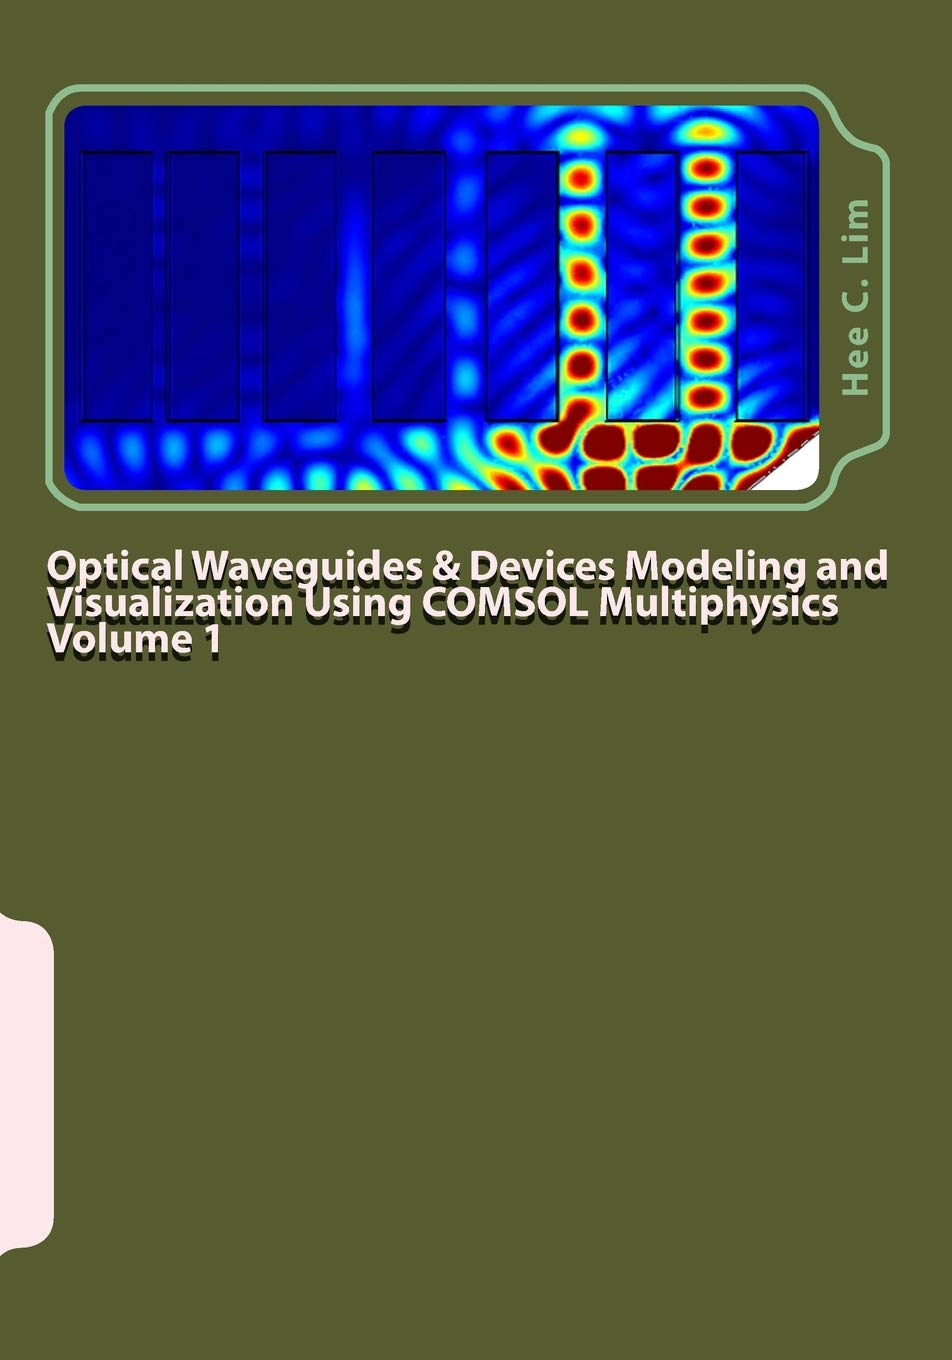 Optical Waveguides & Devices Modeling and Visualization Using COMSOL